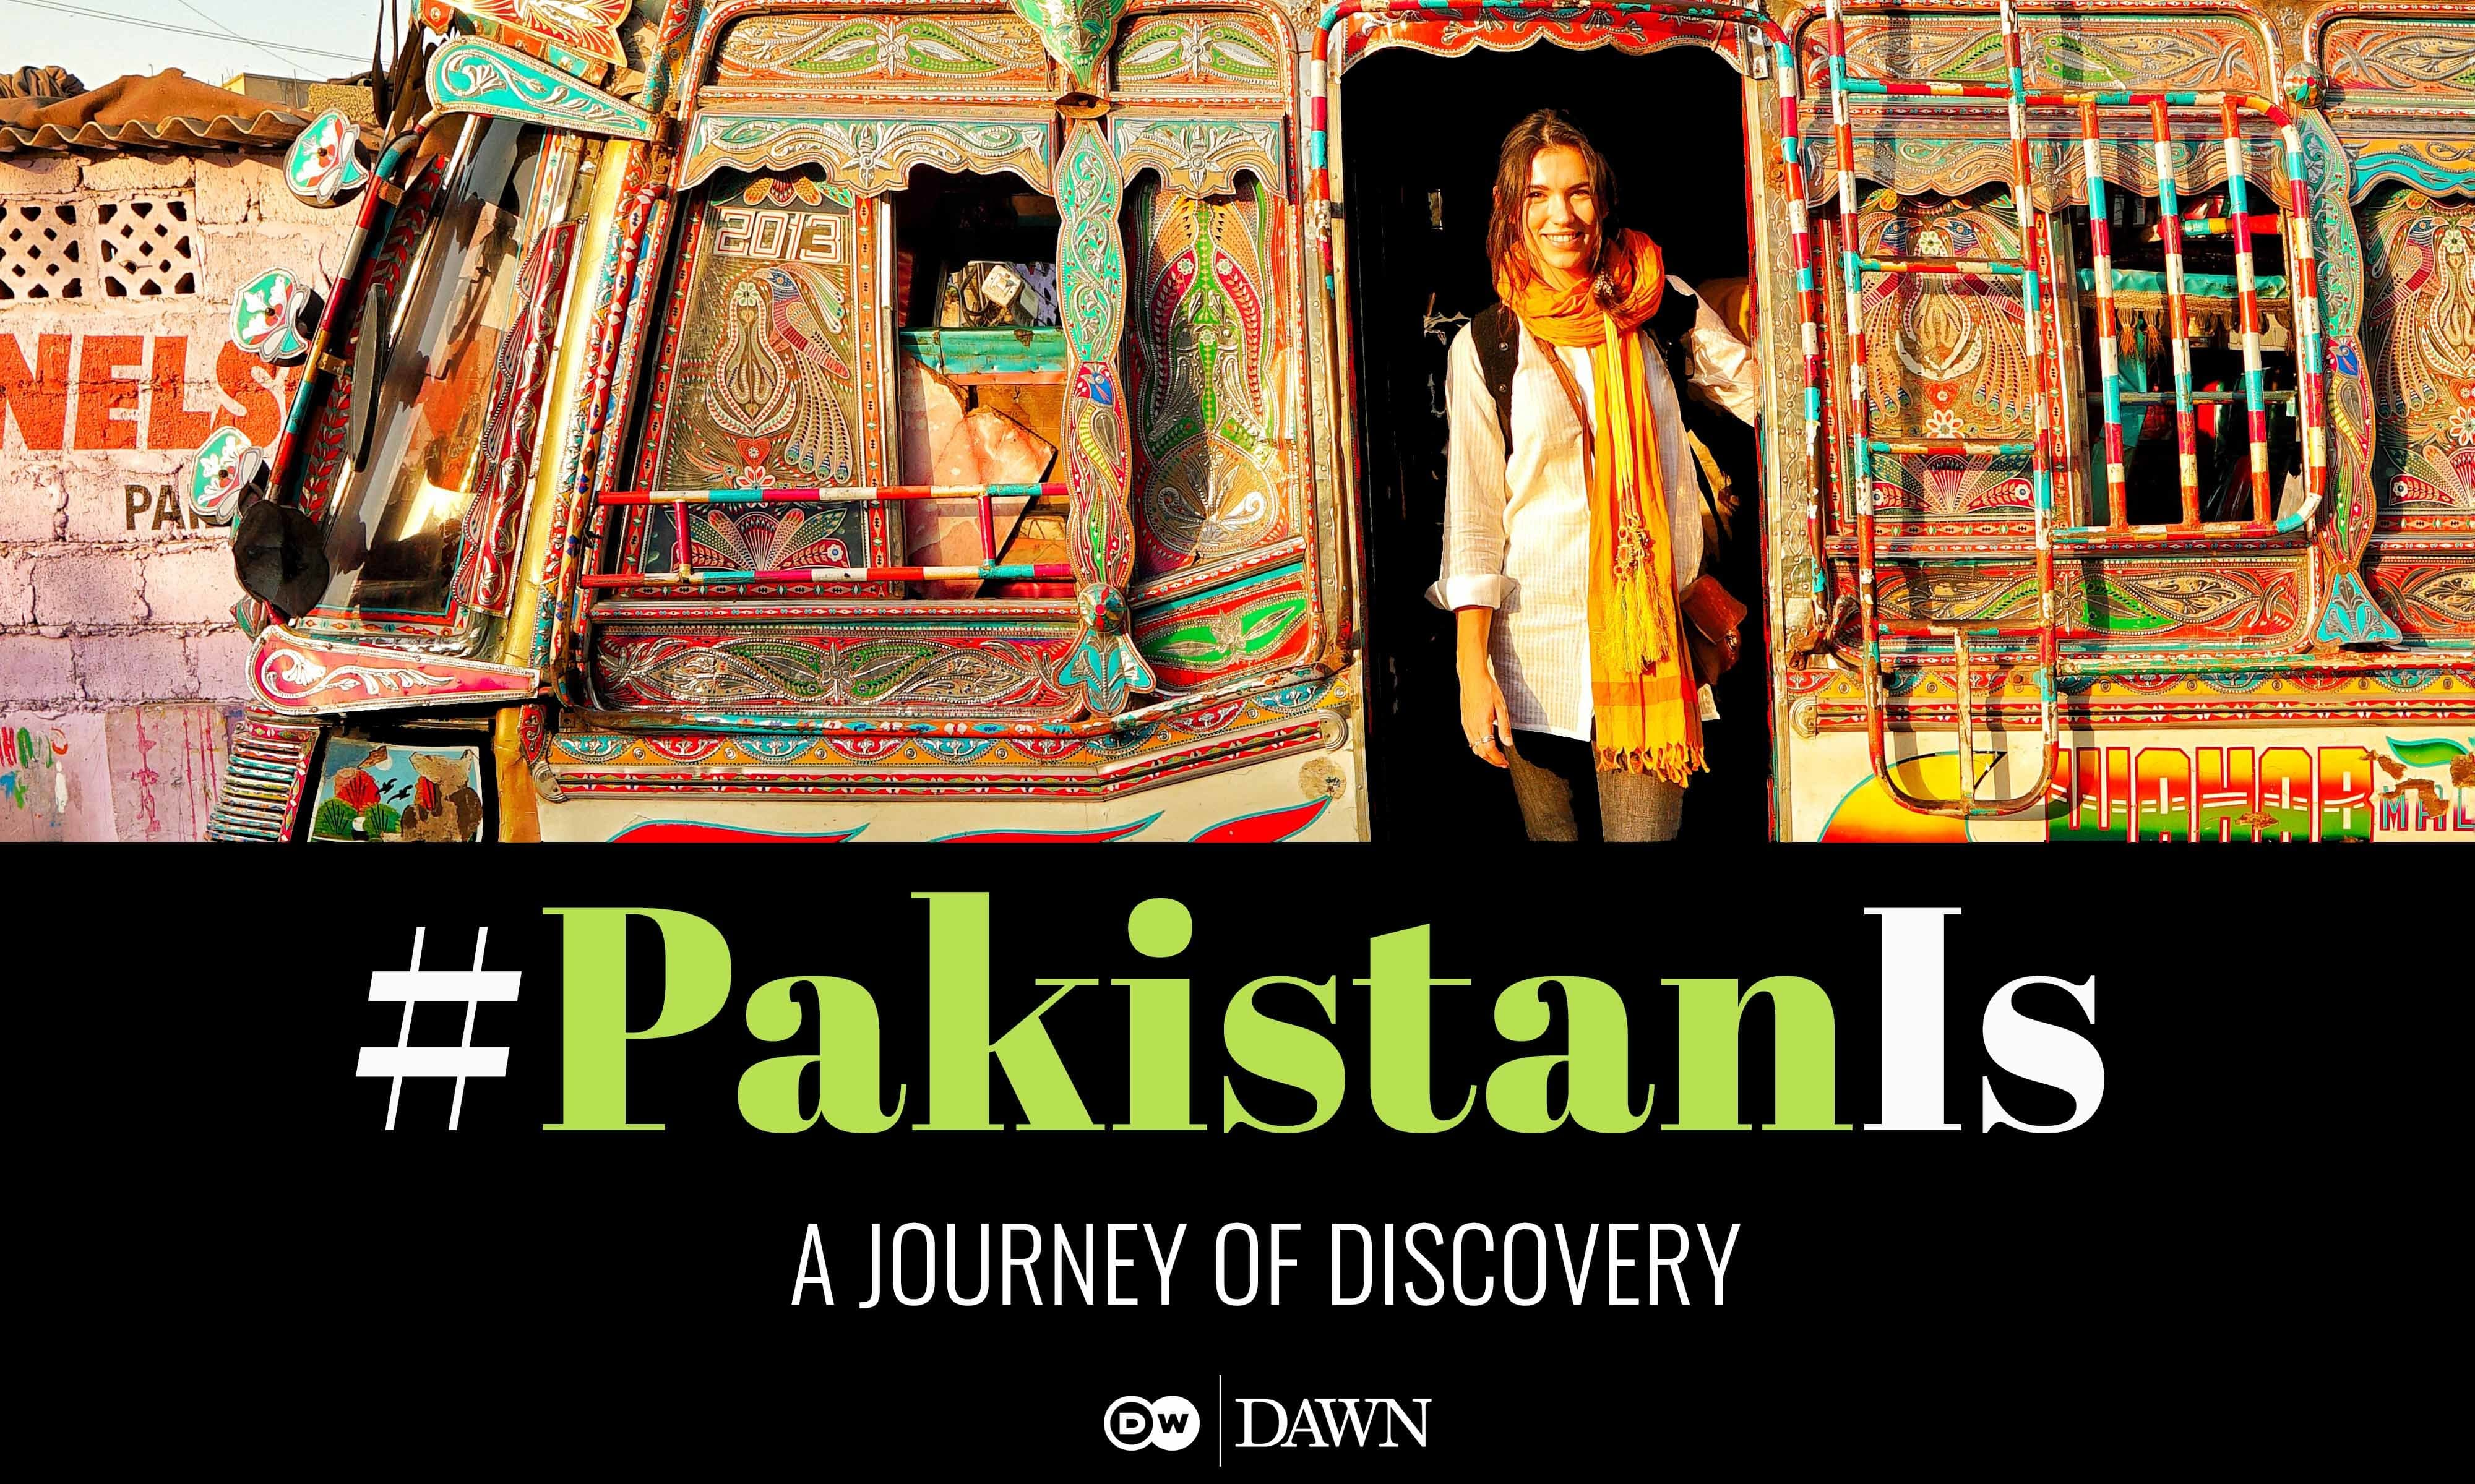 PakistanIs - A journey of discovery